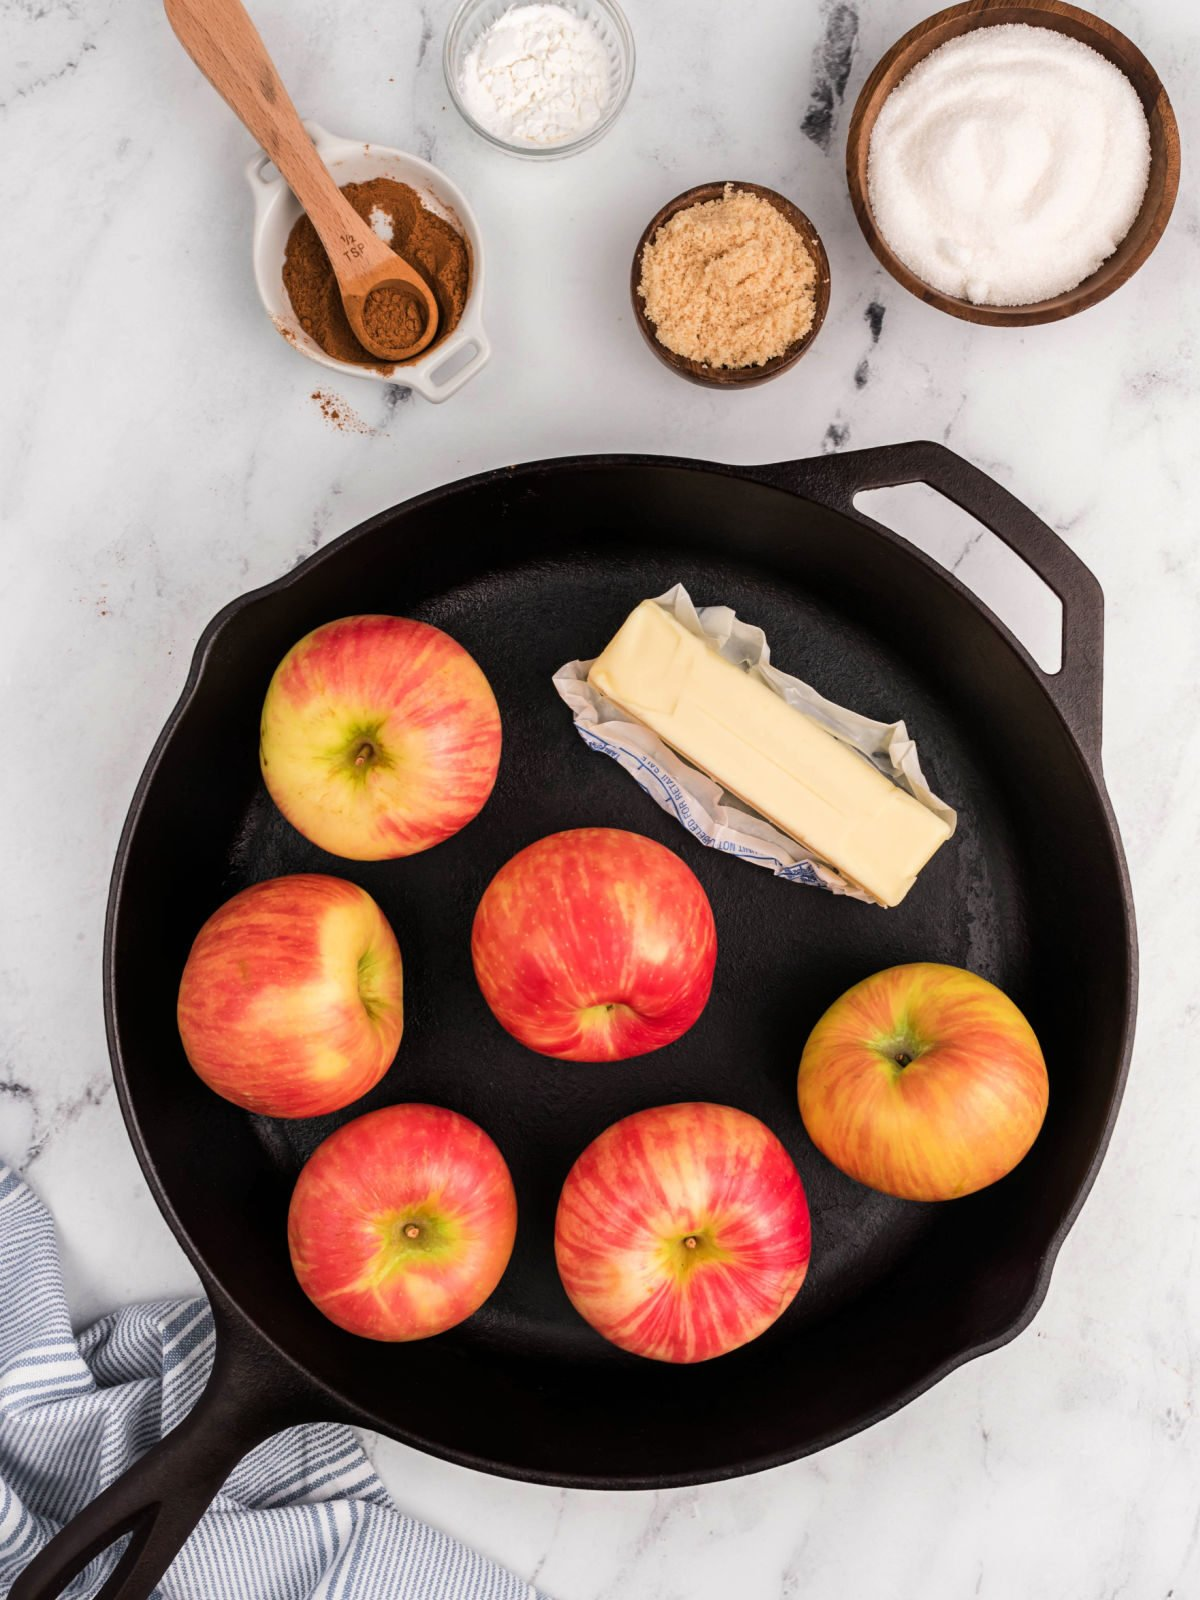 Cast iron skillet with six apples and a stick of butter.